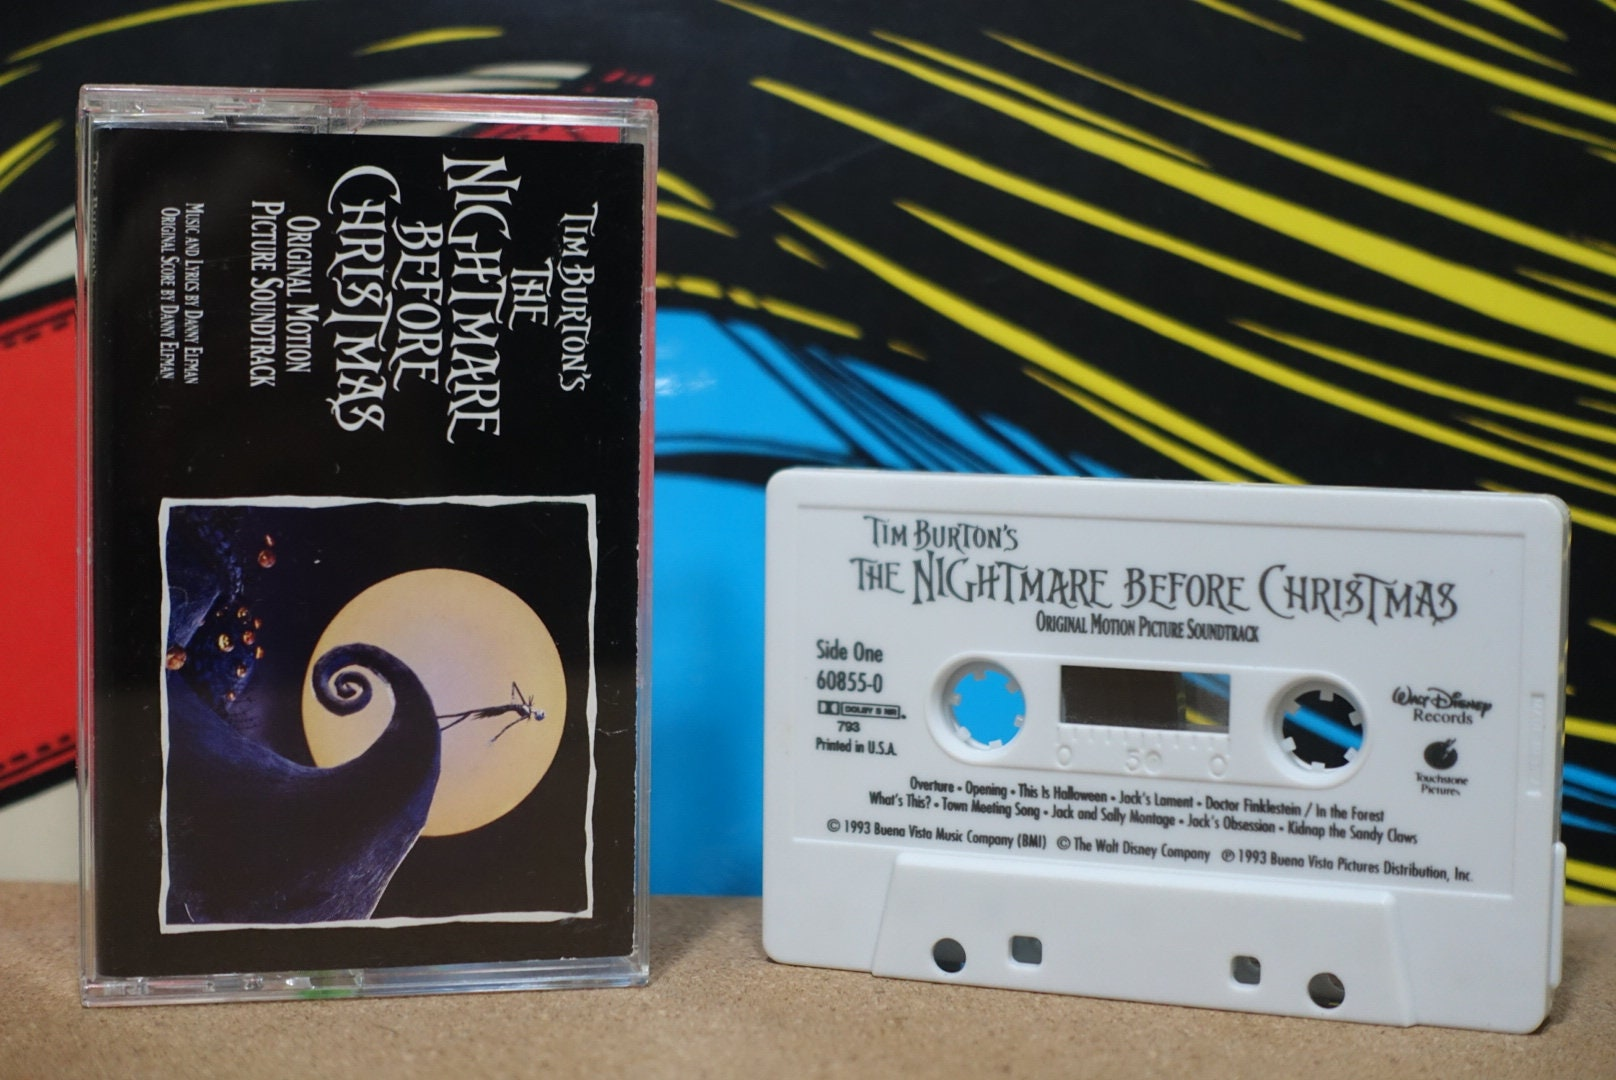 tim burtons the nightmare before christmas original motion picture soundtrack by danny elfman vintage cassette tape - Danny Elfman Nightmare Before Christmas Overture